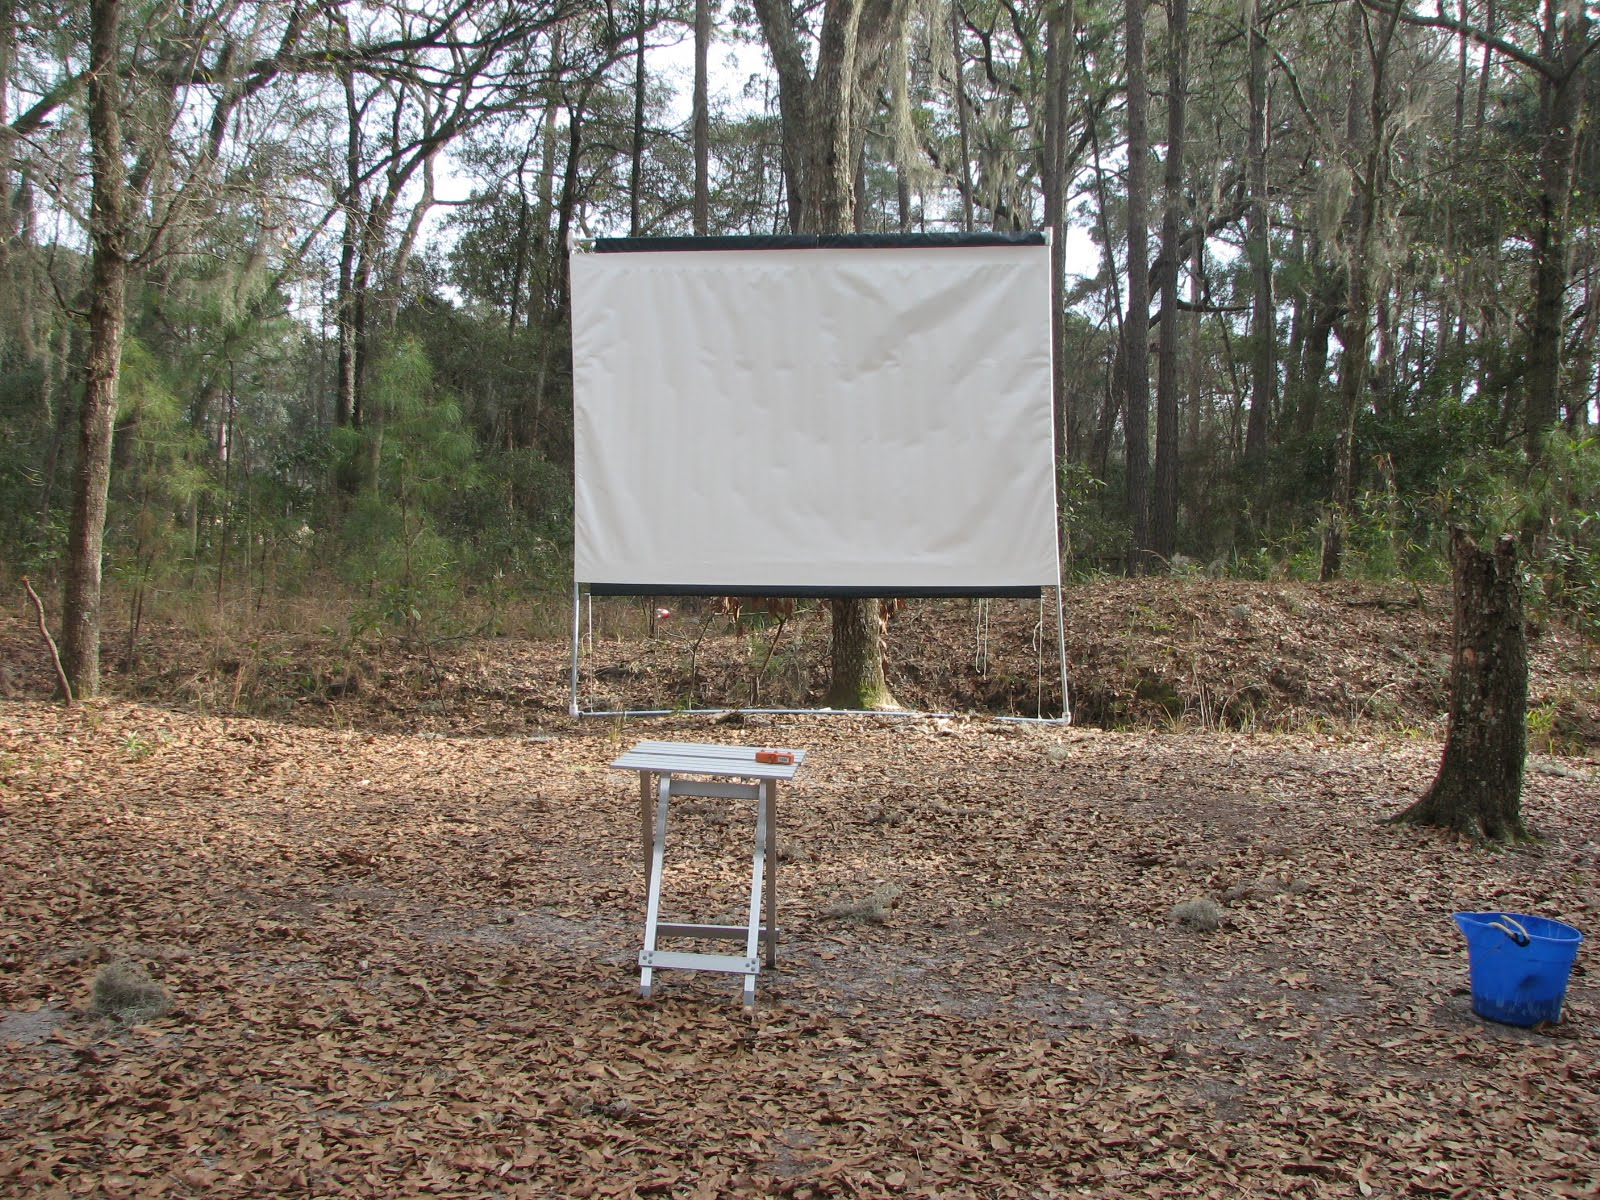 how to build an outdoor movie projector screen cheap. Black Bedroom Furniture Sets. Home Design Ideas